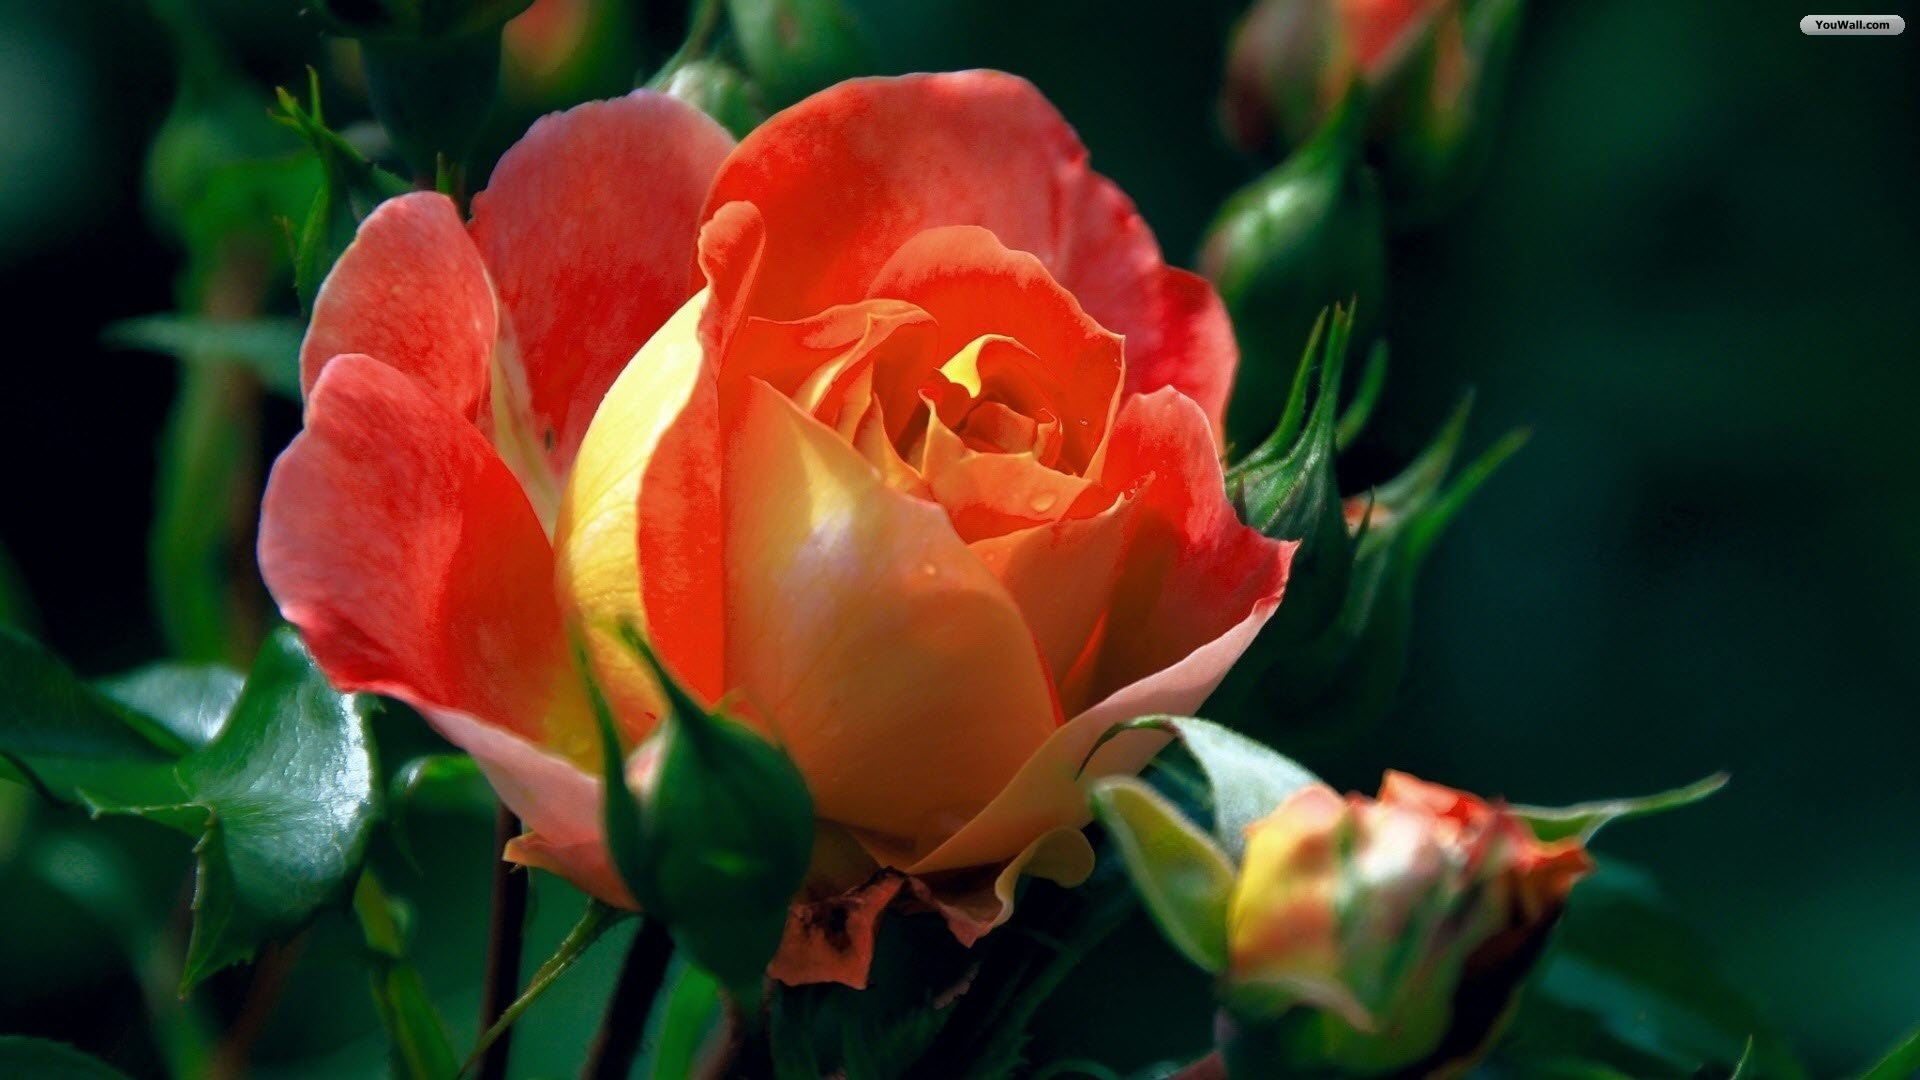 beautiful roses wallpapers , rose flower images, rose pictures 1920x1080